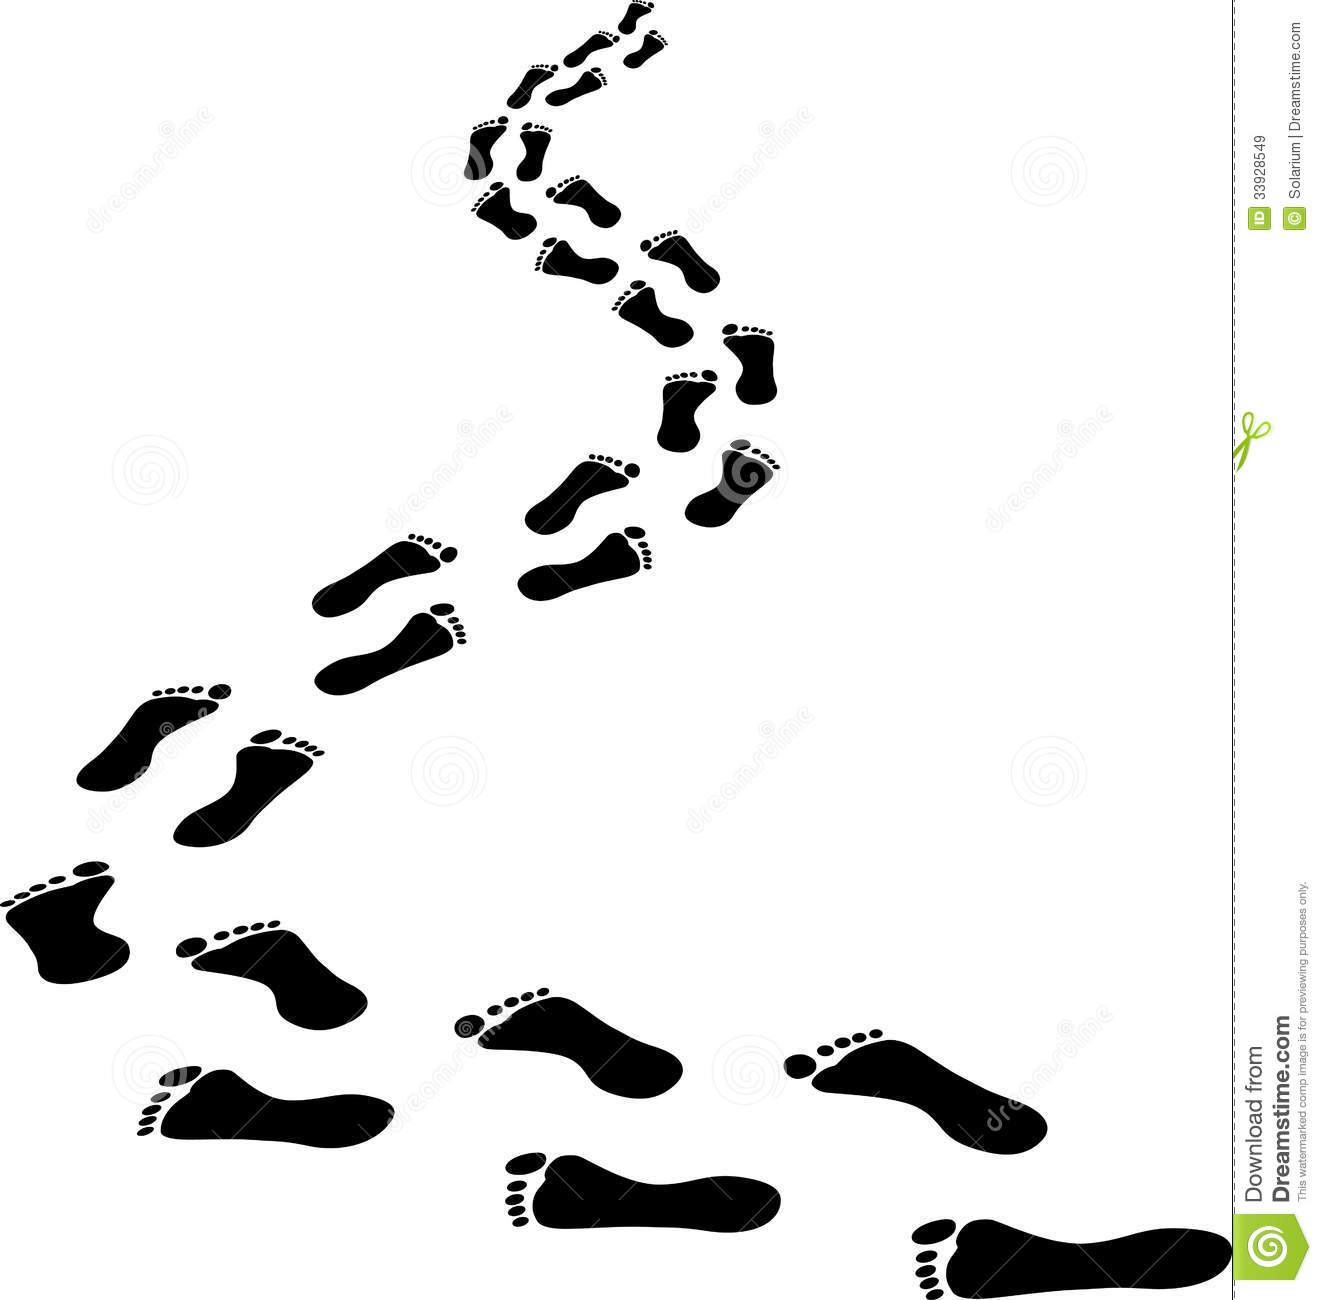 footstep 20clipart clipart panda free clipart images free sneaker footprint clipart free footprint clipart downloads